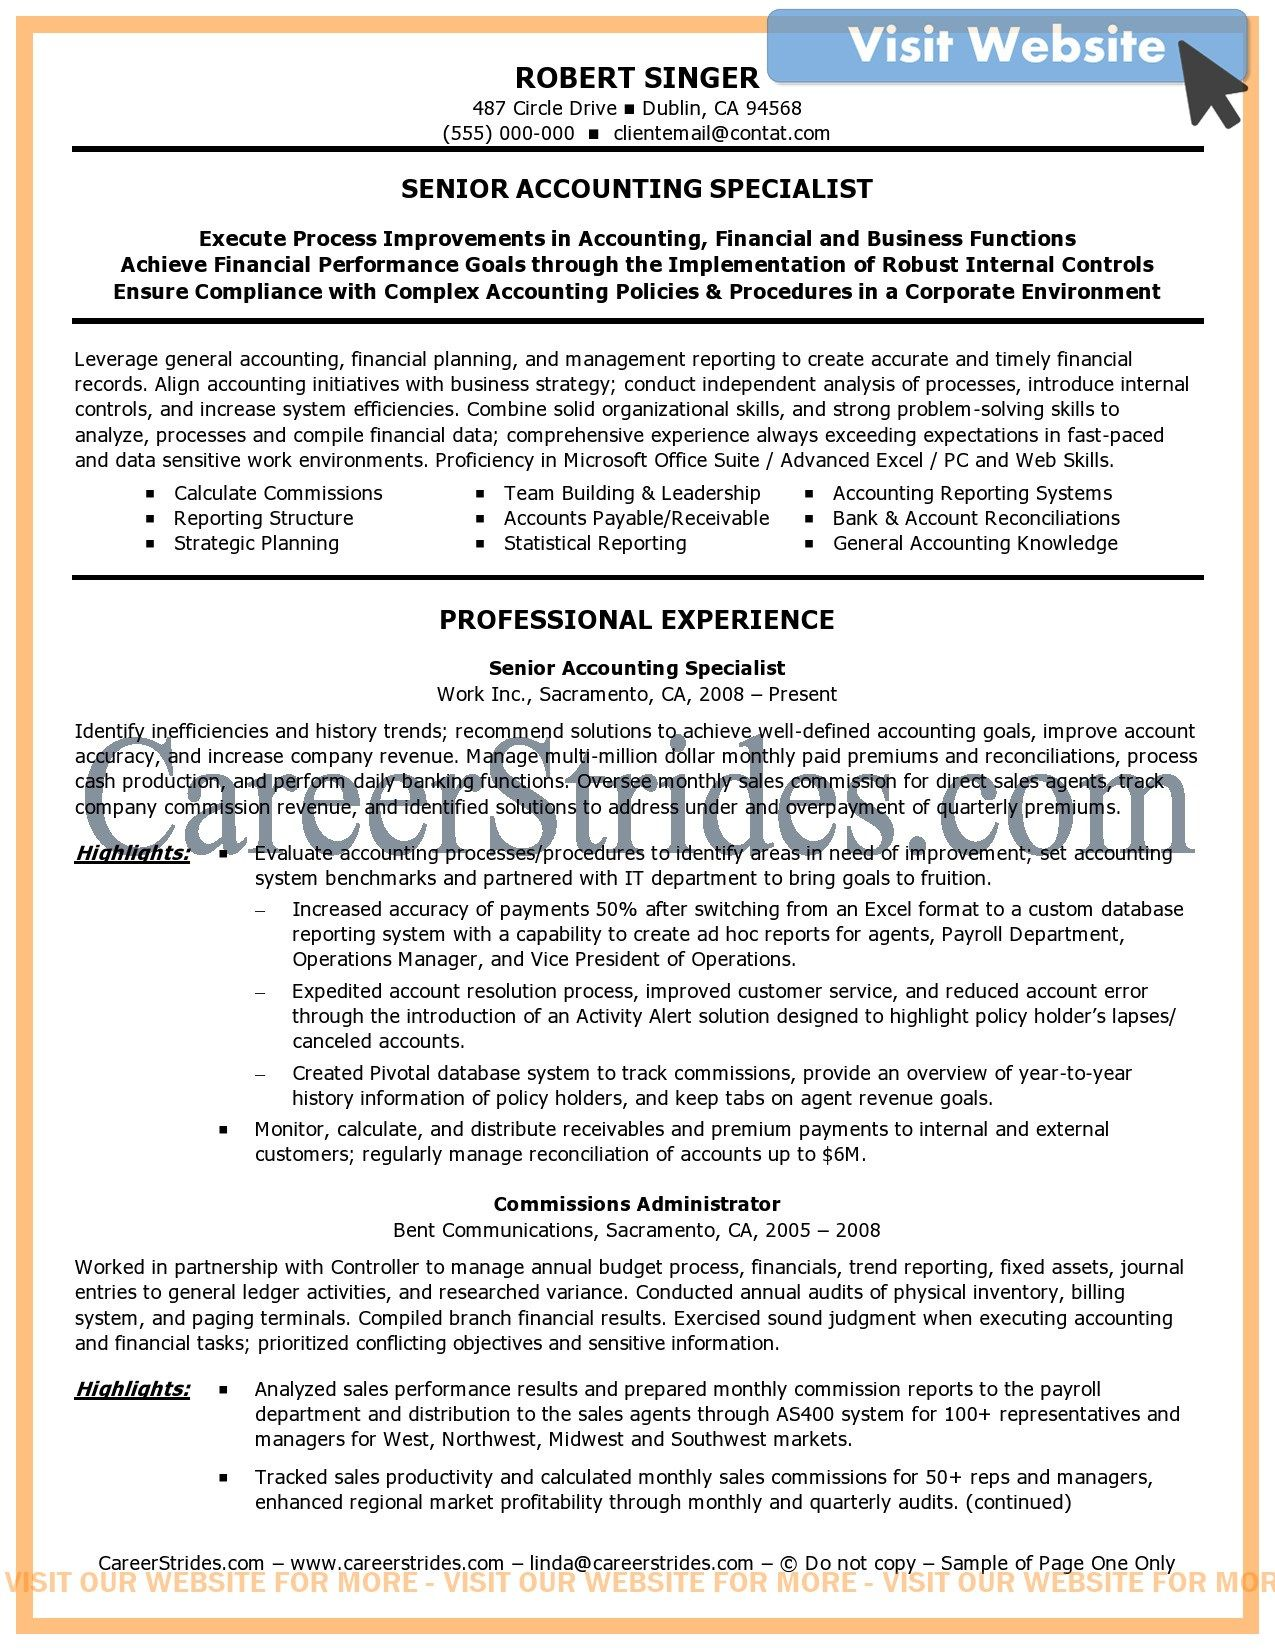 Auditor Resume Samples 2020 Auditor Resume Templates 2021 Accountant Resume Resume Objective Sample Resume Examples